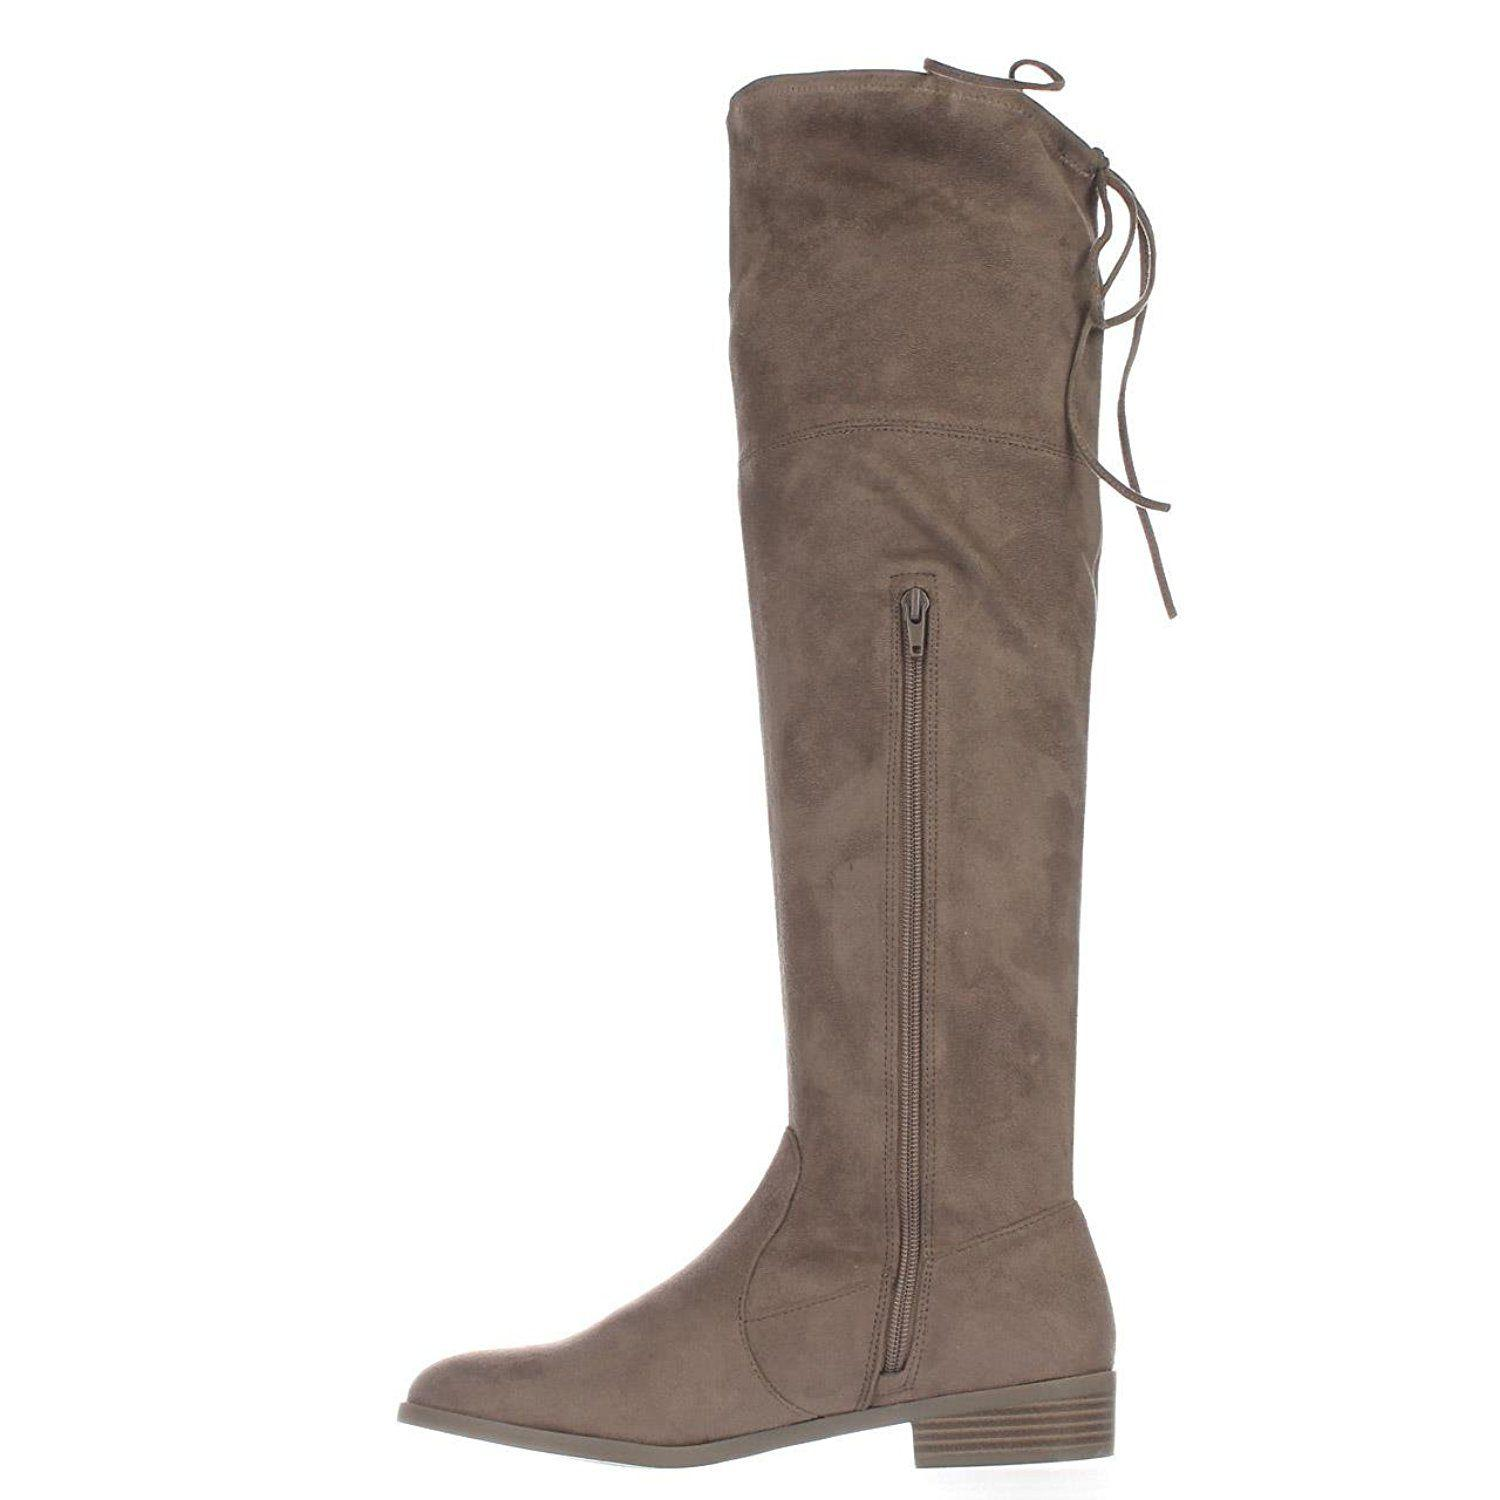 56c6514b15a INC International Concepts. Brown Womens Imannie Closed Toe Over Knee  Fashion Boots